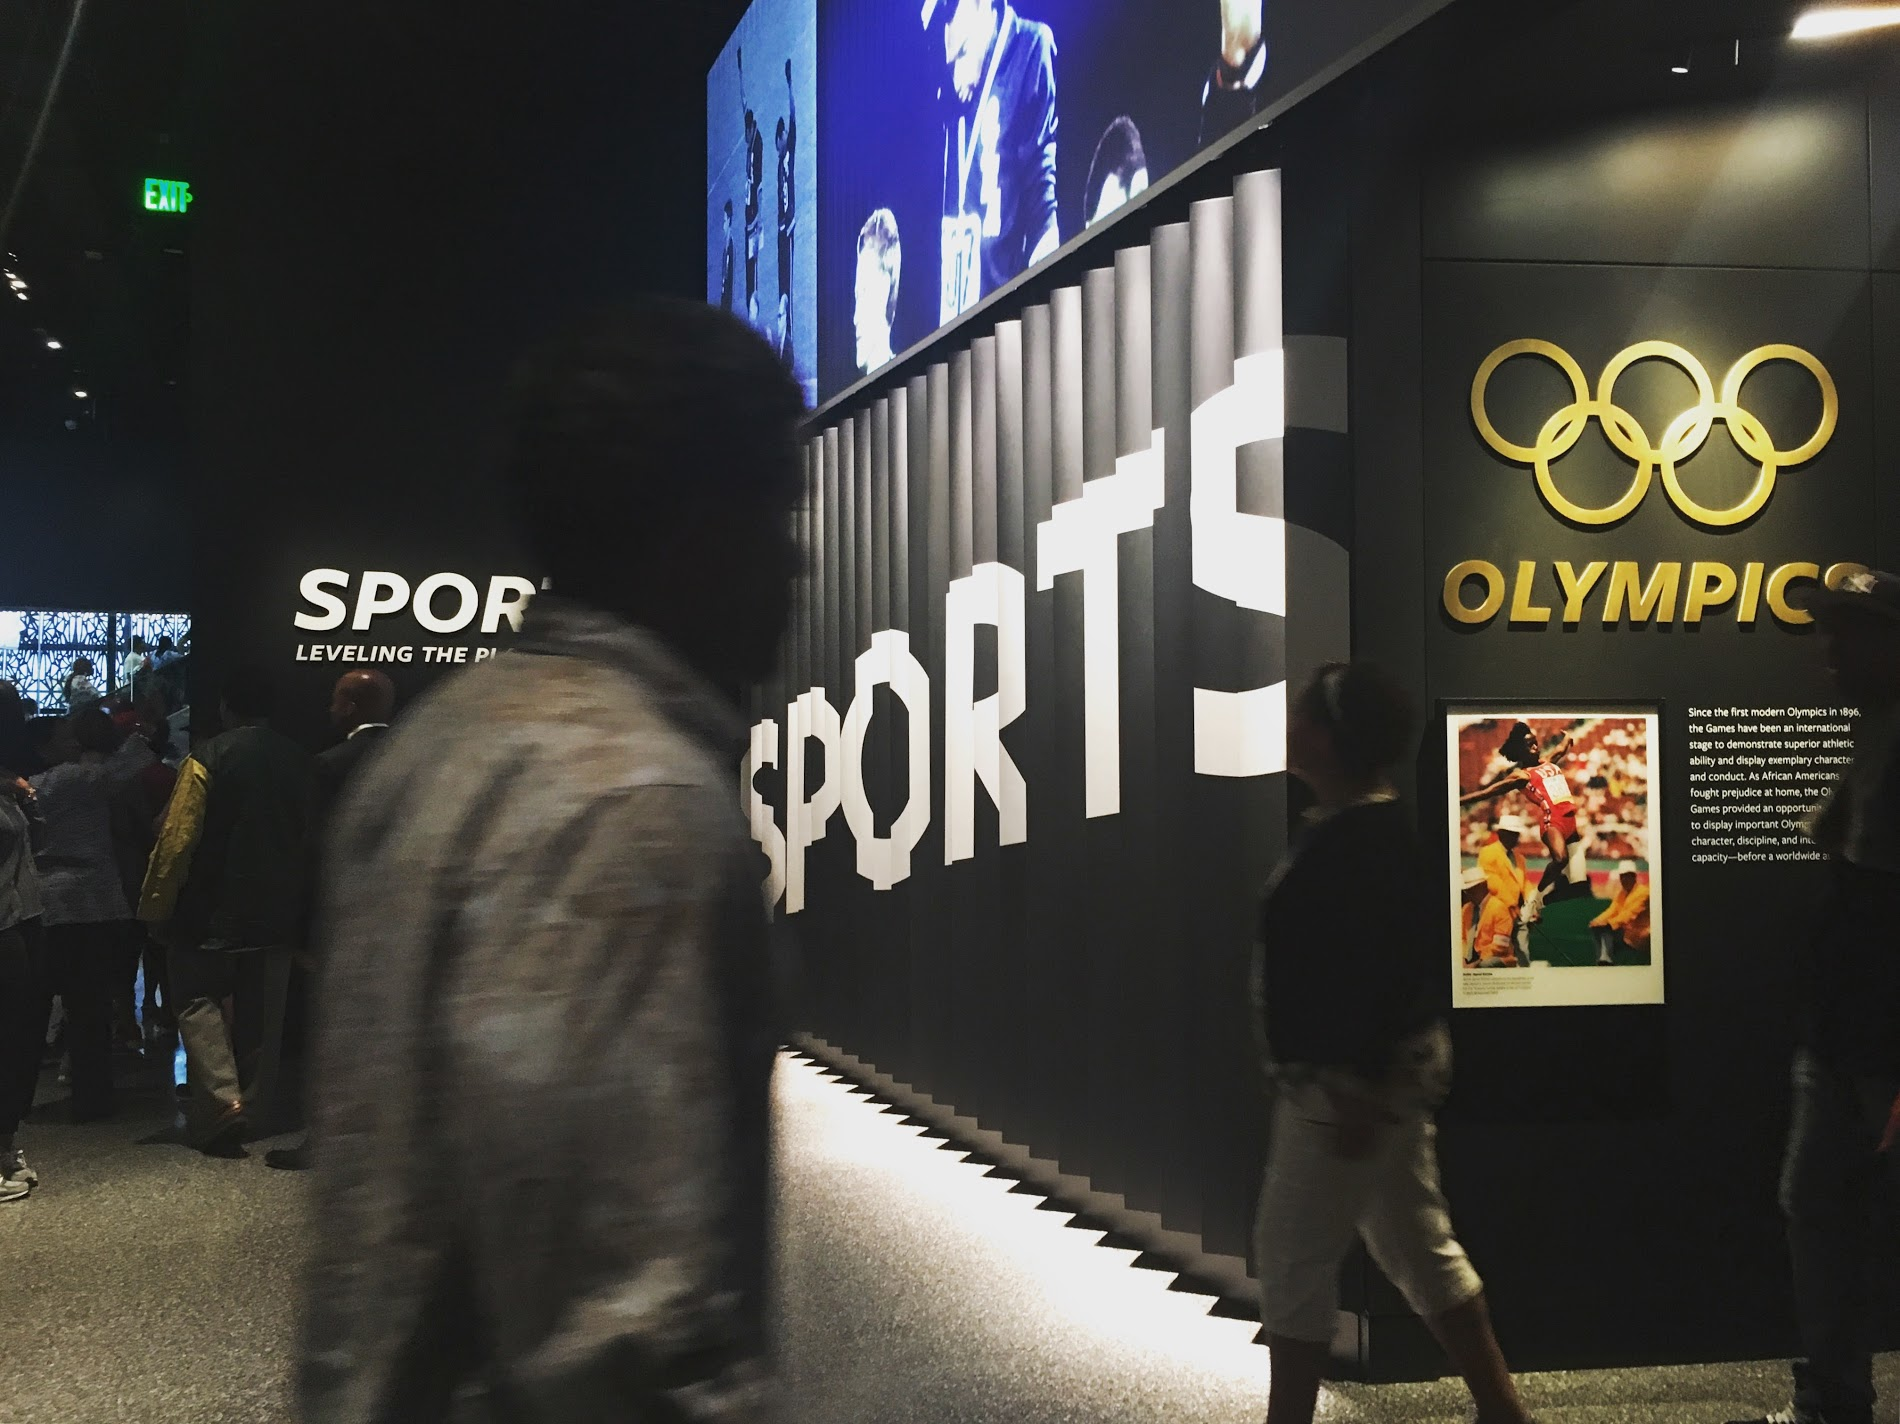 The  Sports: Leveling the Playing Field gallery explores the contributions of athletes, both on and off the field. Photo credit: Aki Carpenter